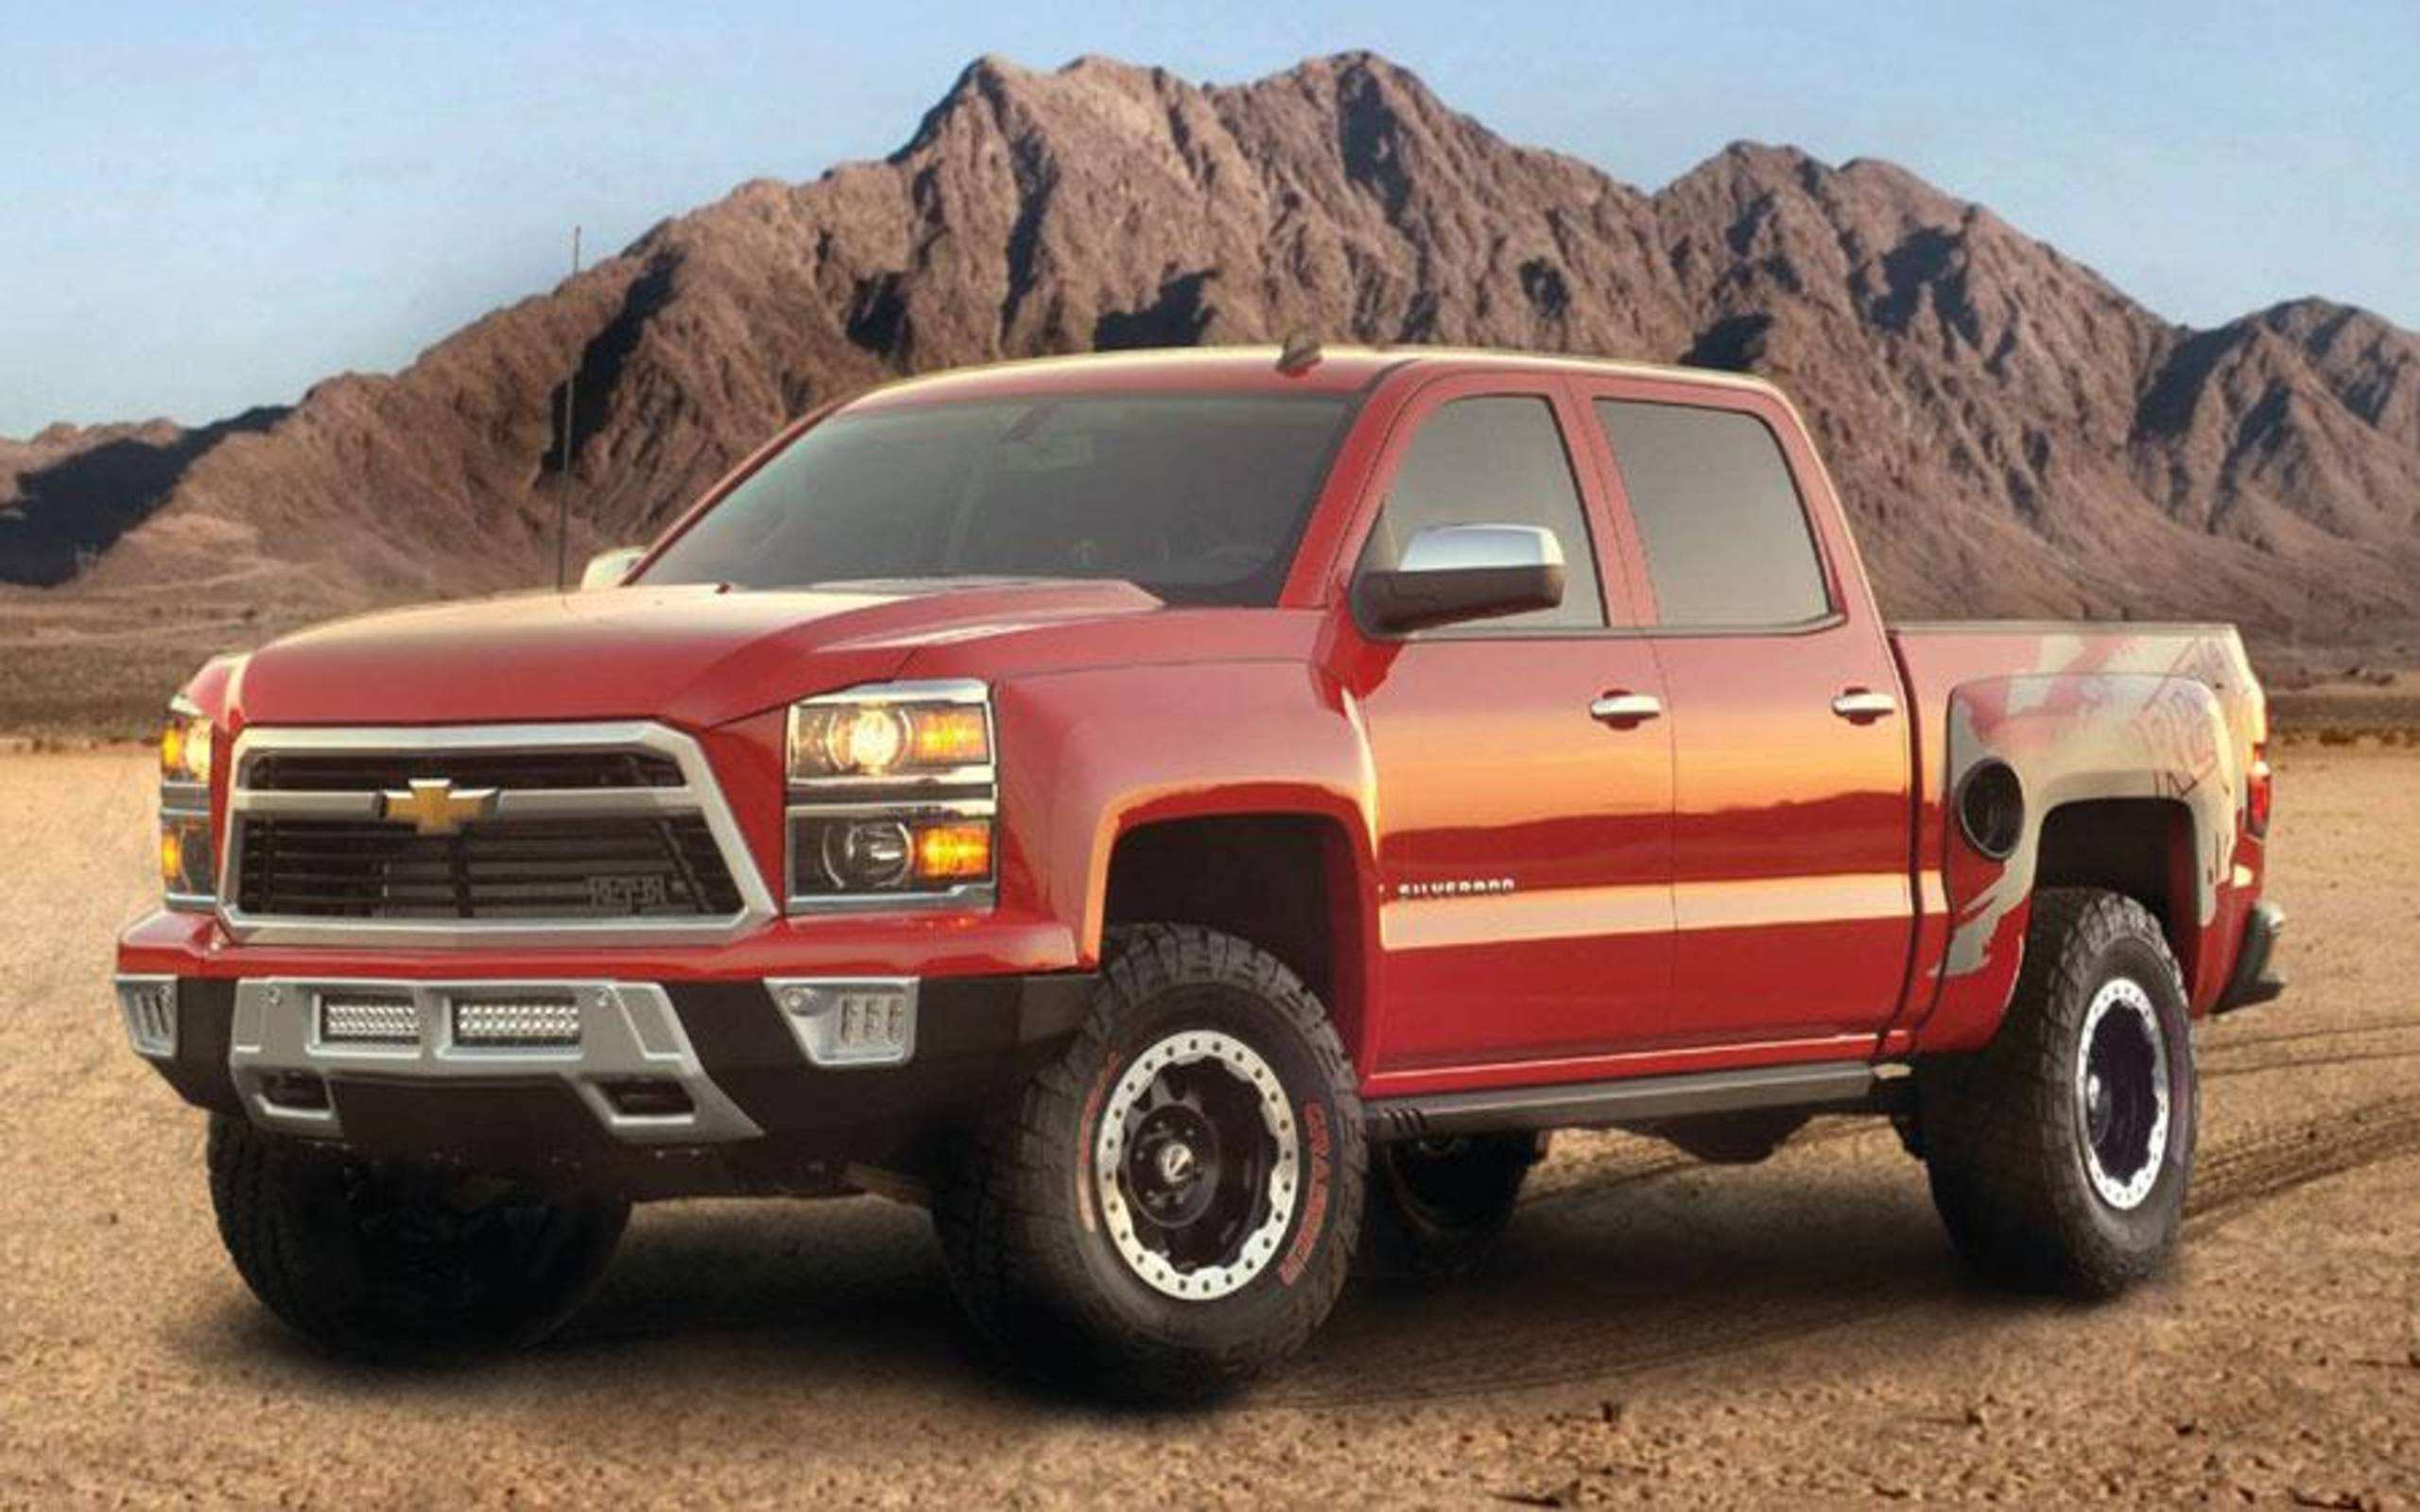 68 Best Review Chevy Reaper Images First Drive for Chevy Reaper Images